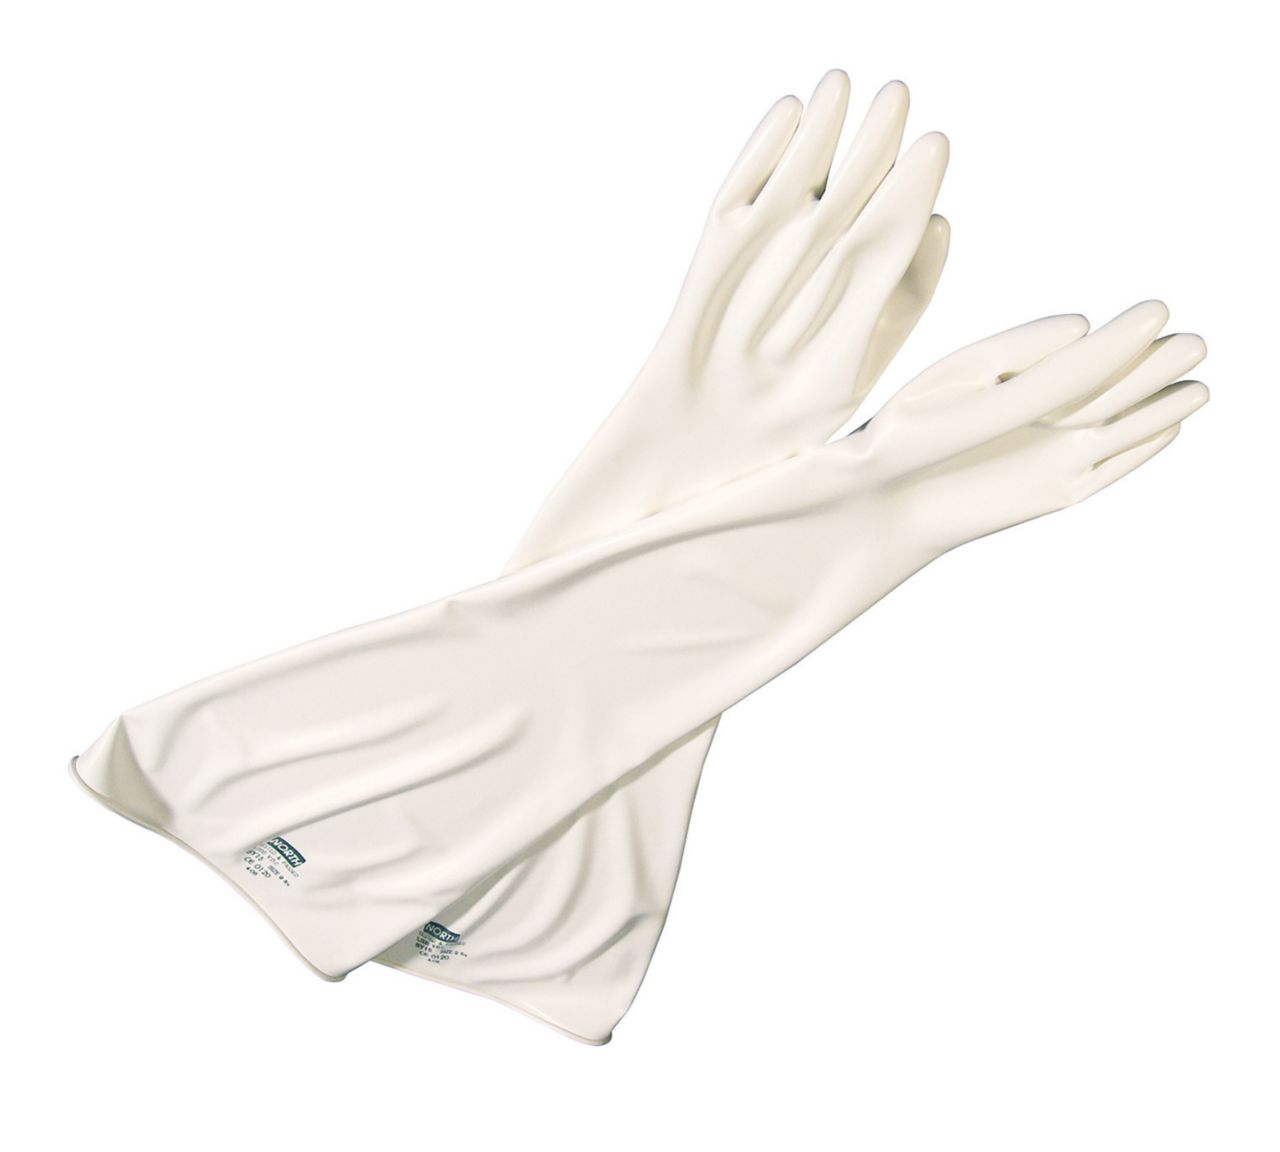 CSM Lead-Loaded Glovebox Gloves - 8YLY3032